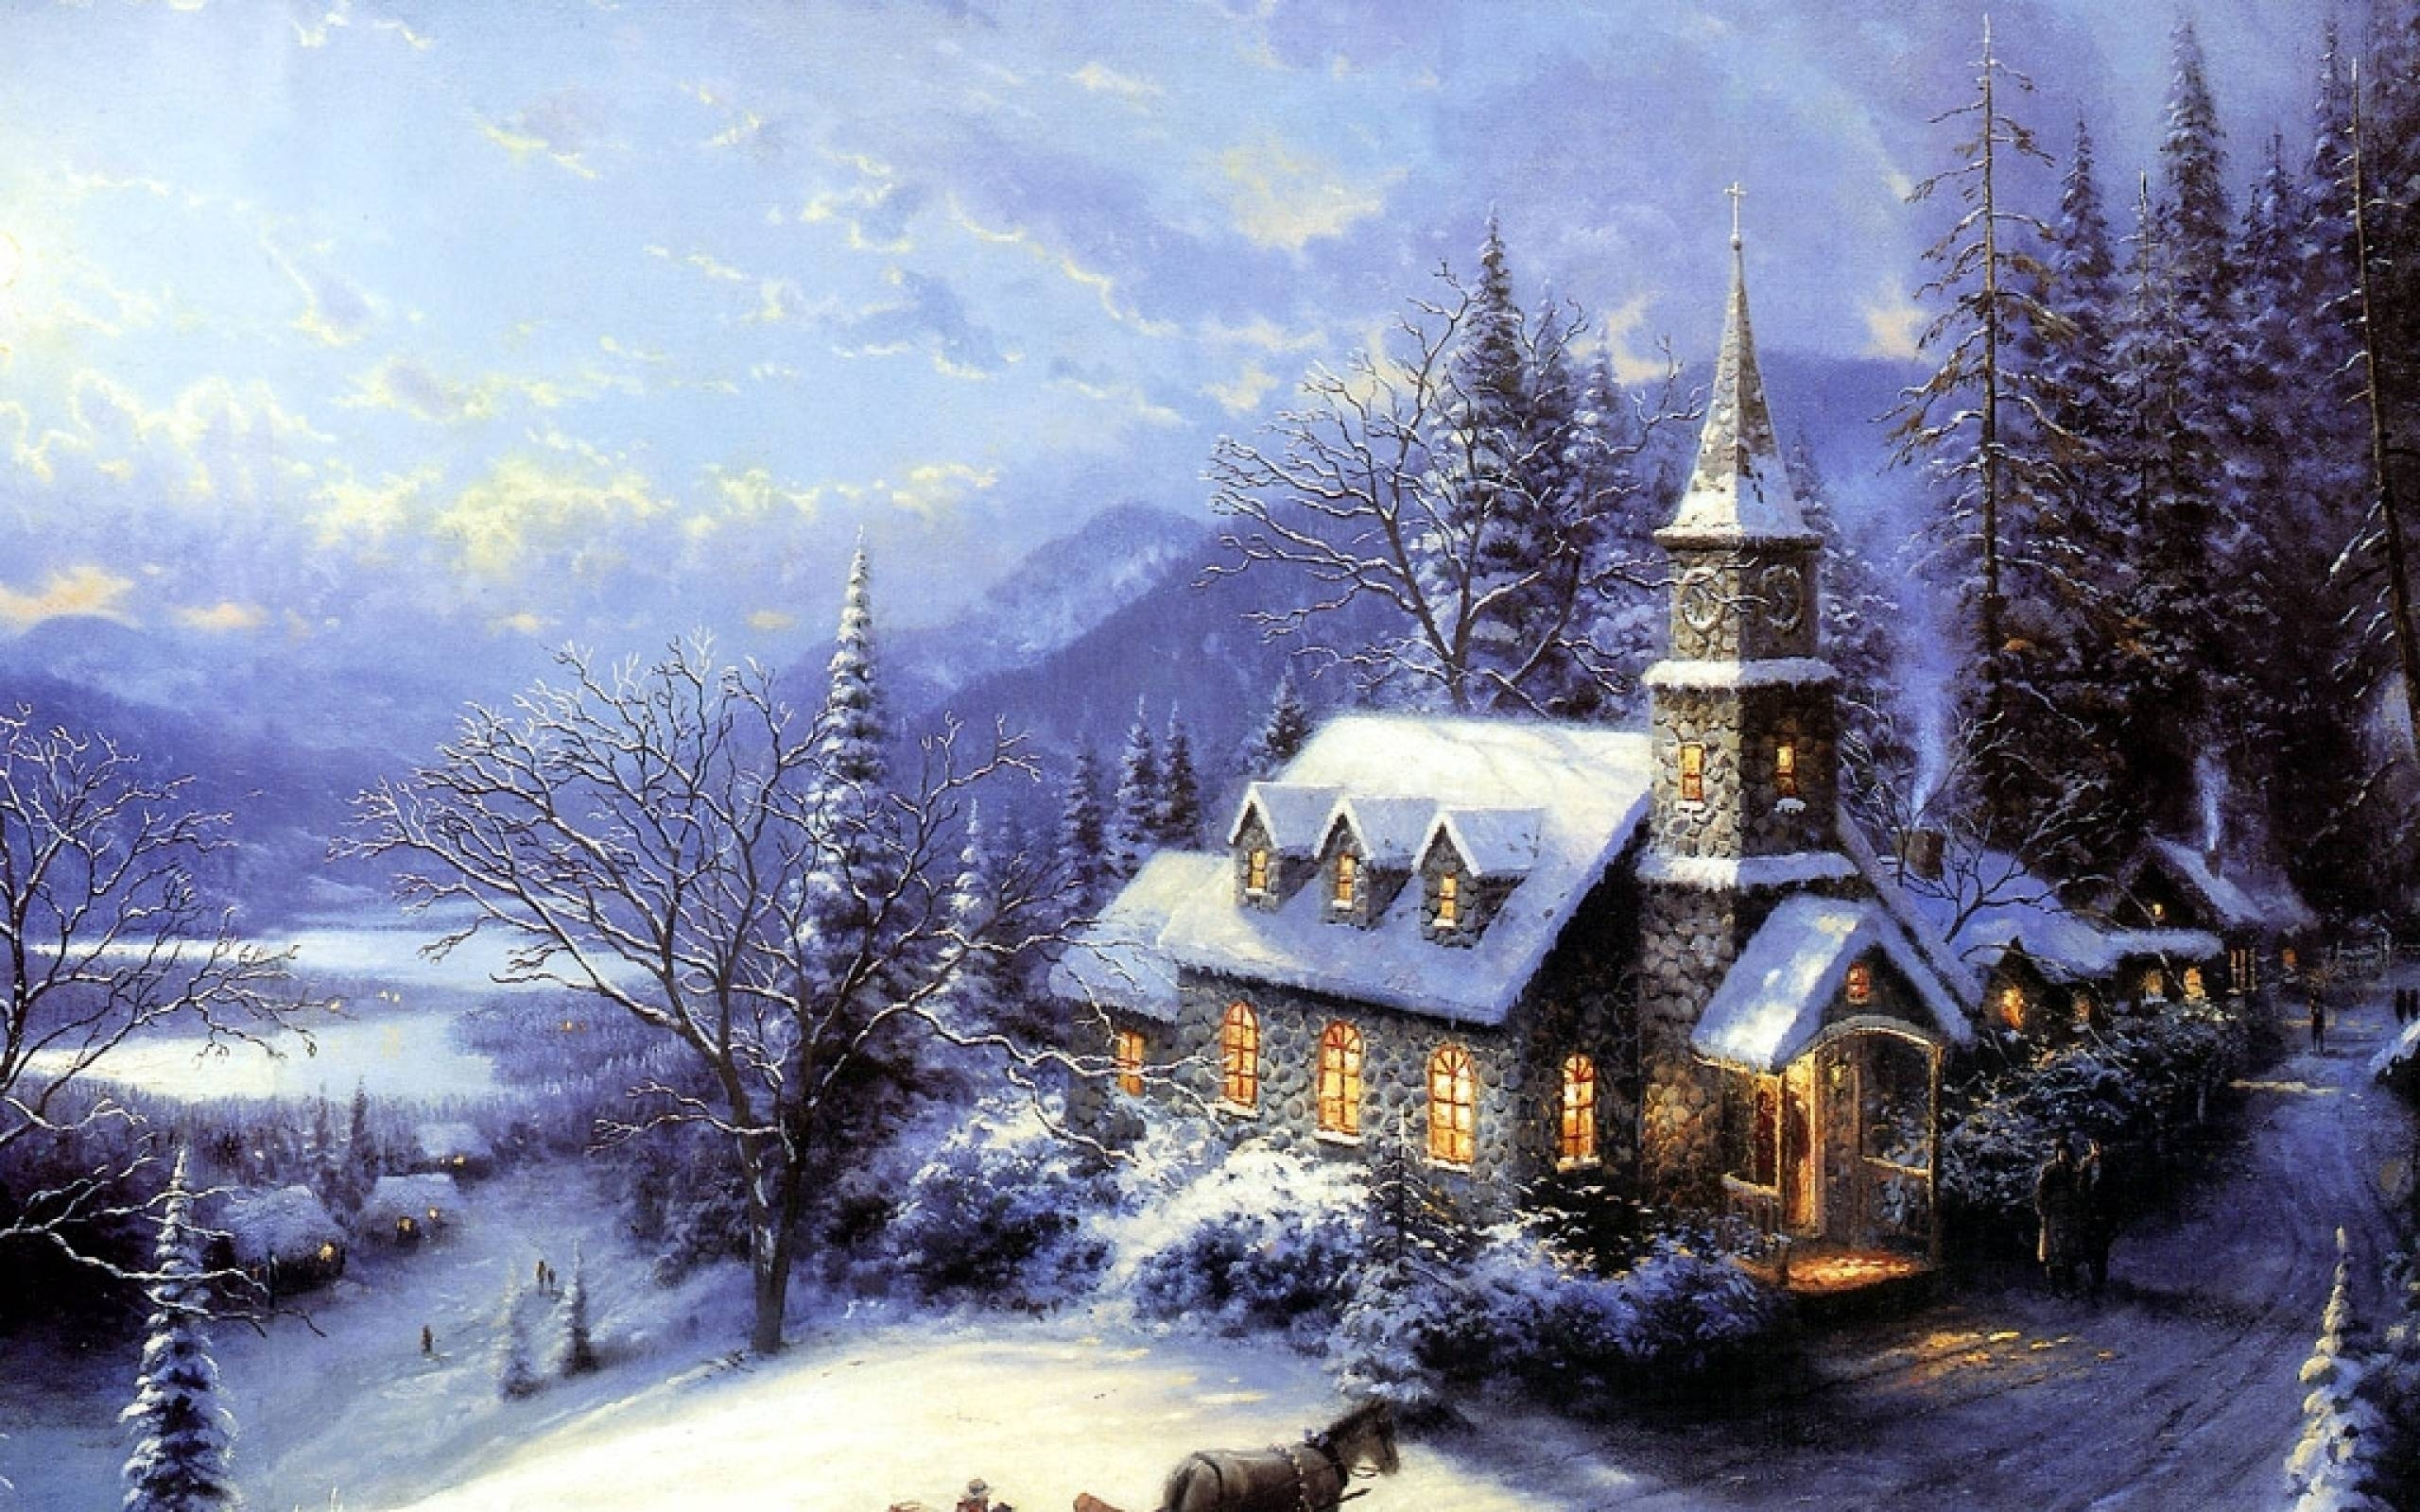 2015 free thomas kinkade christmas screensavers - wallpapers, images